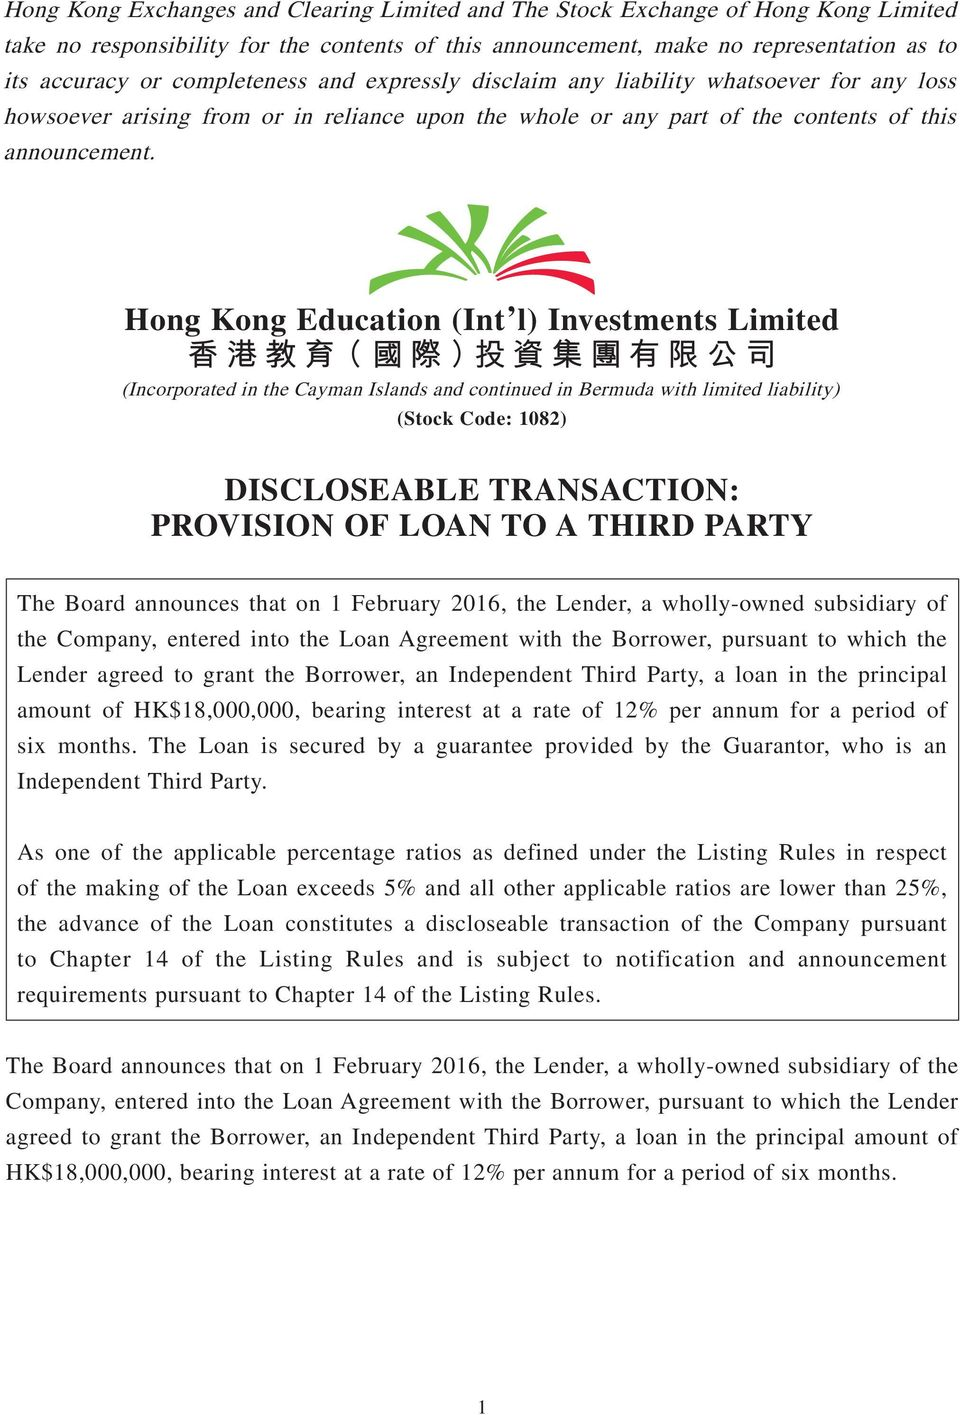 Hong Kong Education (Int l) Investments Limited (Incorporated in the Cayman Islands and continued in Bermuda with limited liability) (Stock Code: 1082) DISCLOSEABLE TRANSACTION: PROVISION OF LOAN TO